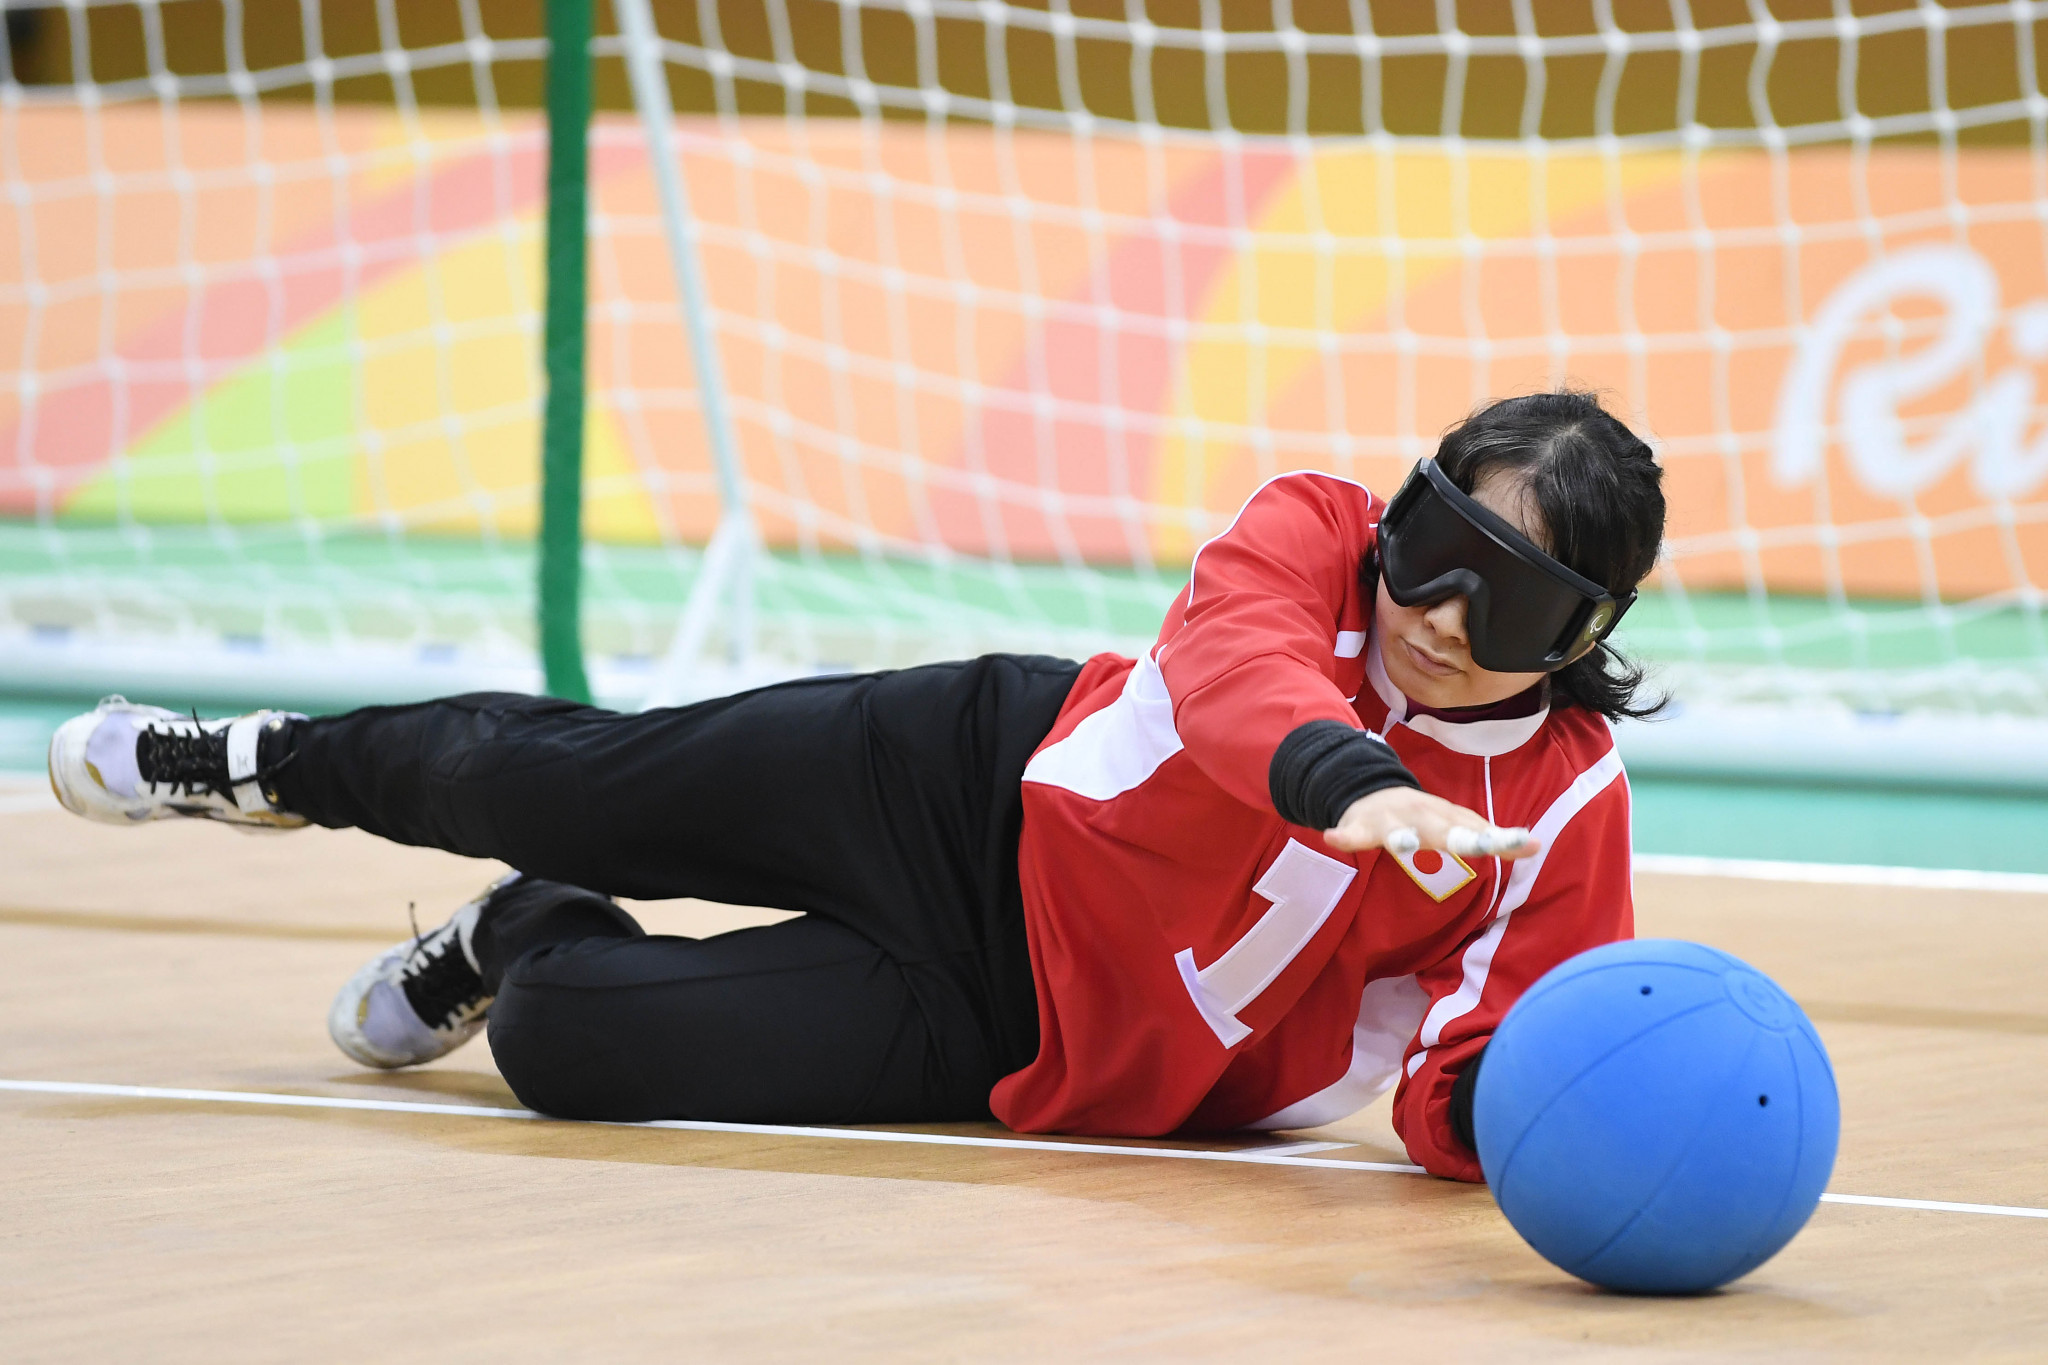 Japan's Haruka Wakasugi is one of two goalballers to have been nominated for the IPC Athlete of the Month award for December 2019 ©Getty Images